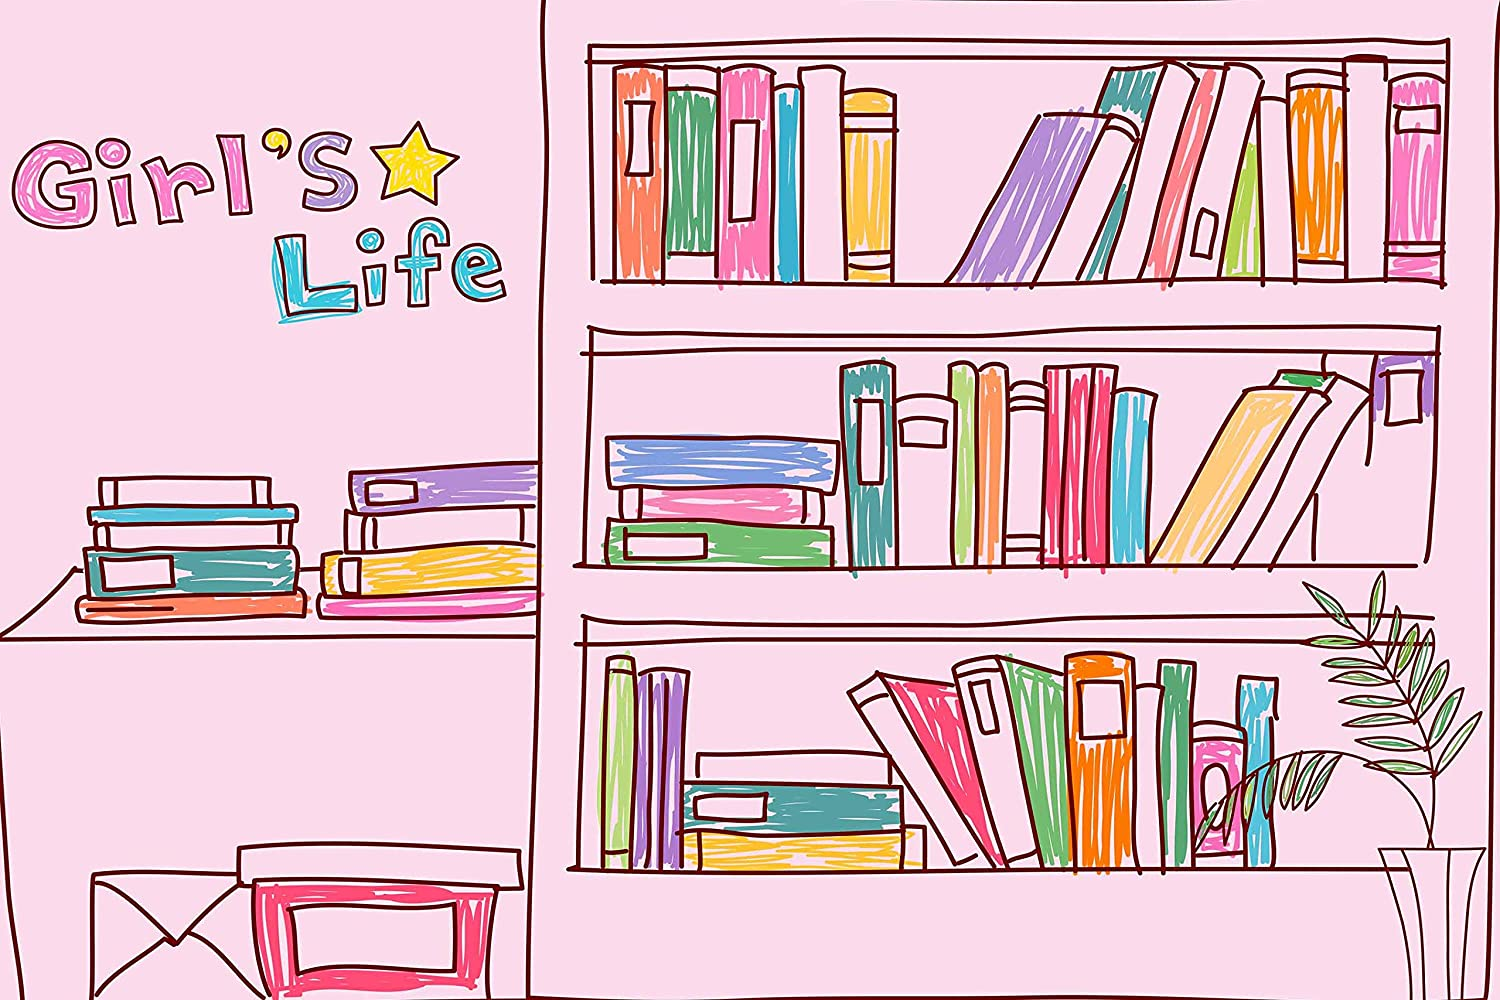 Books School College Pupils Background Pink Girl Study Room Bookshelf Photography Backdrop for Party Photo Booth Studio Props LYLU896 9x6FT